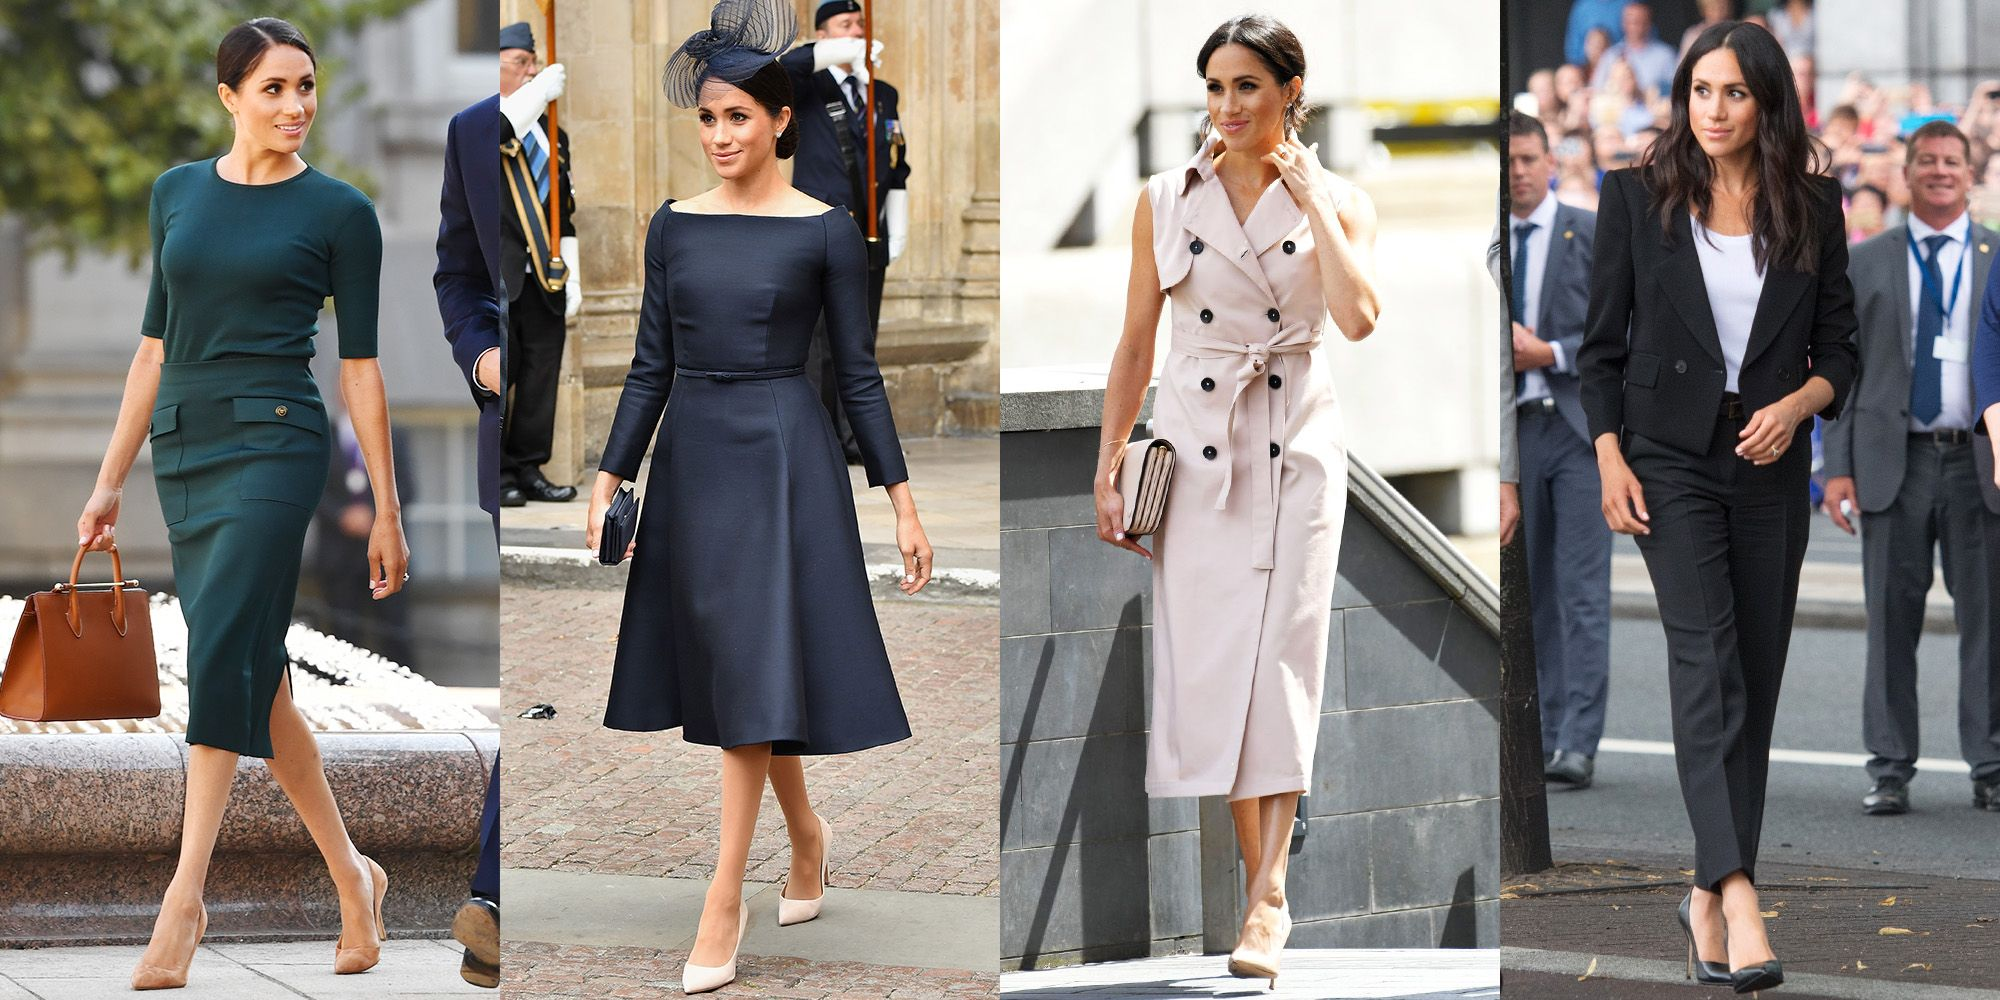 df4319fd3a79 Everything Meghan Markle Has Worn Since the Royal Wedding - Meghan ...